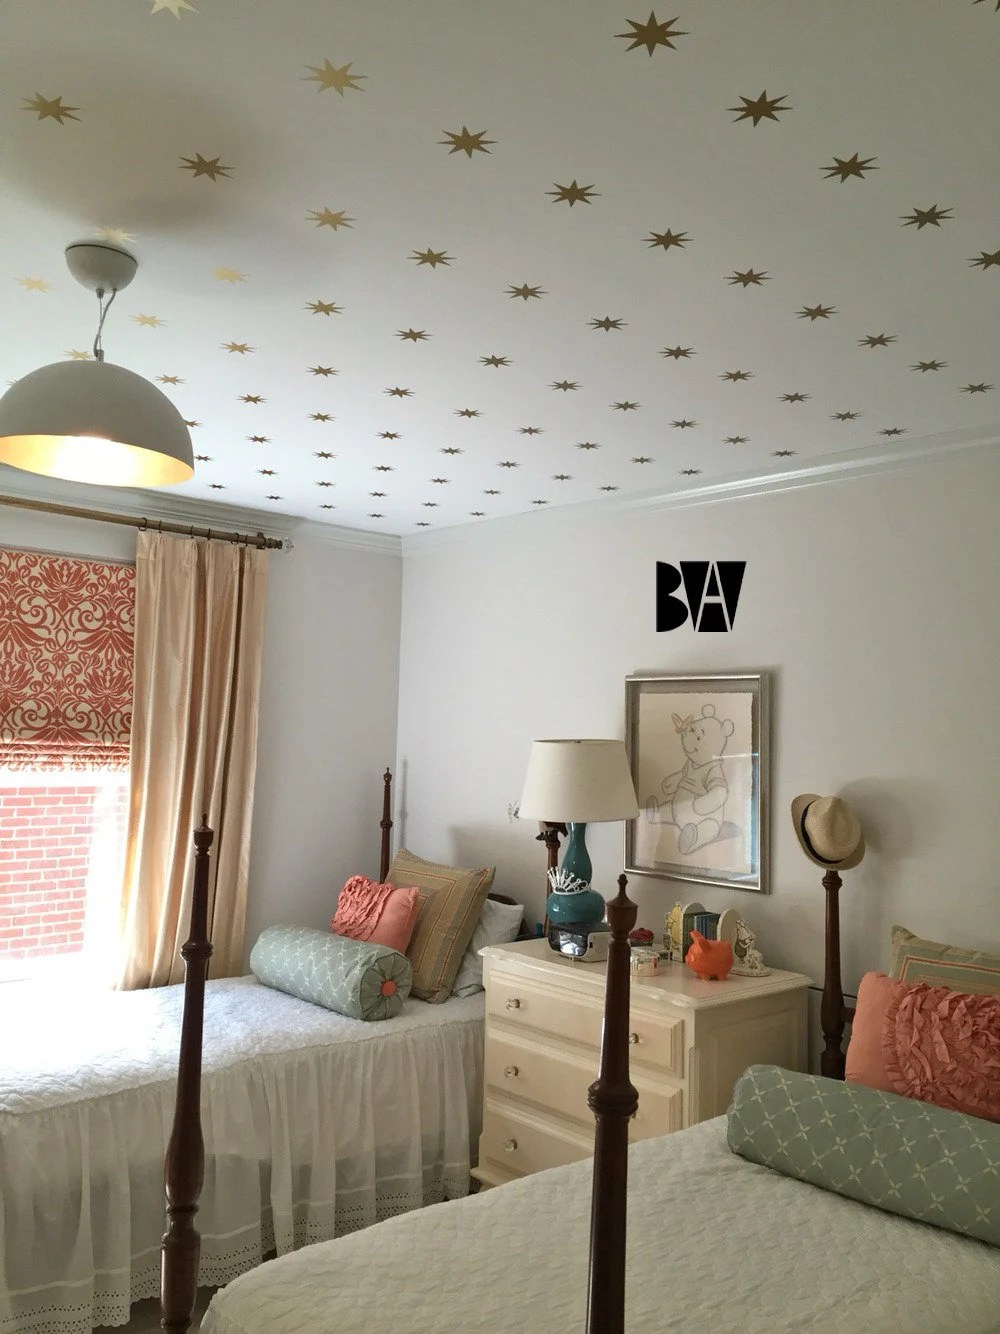 Best Gold Star Ceiling Decals Geometric Wall Decor Gold Vinyl This Month